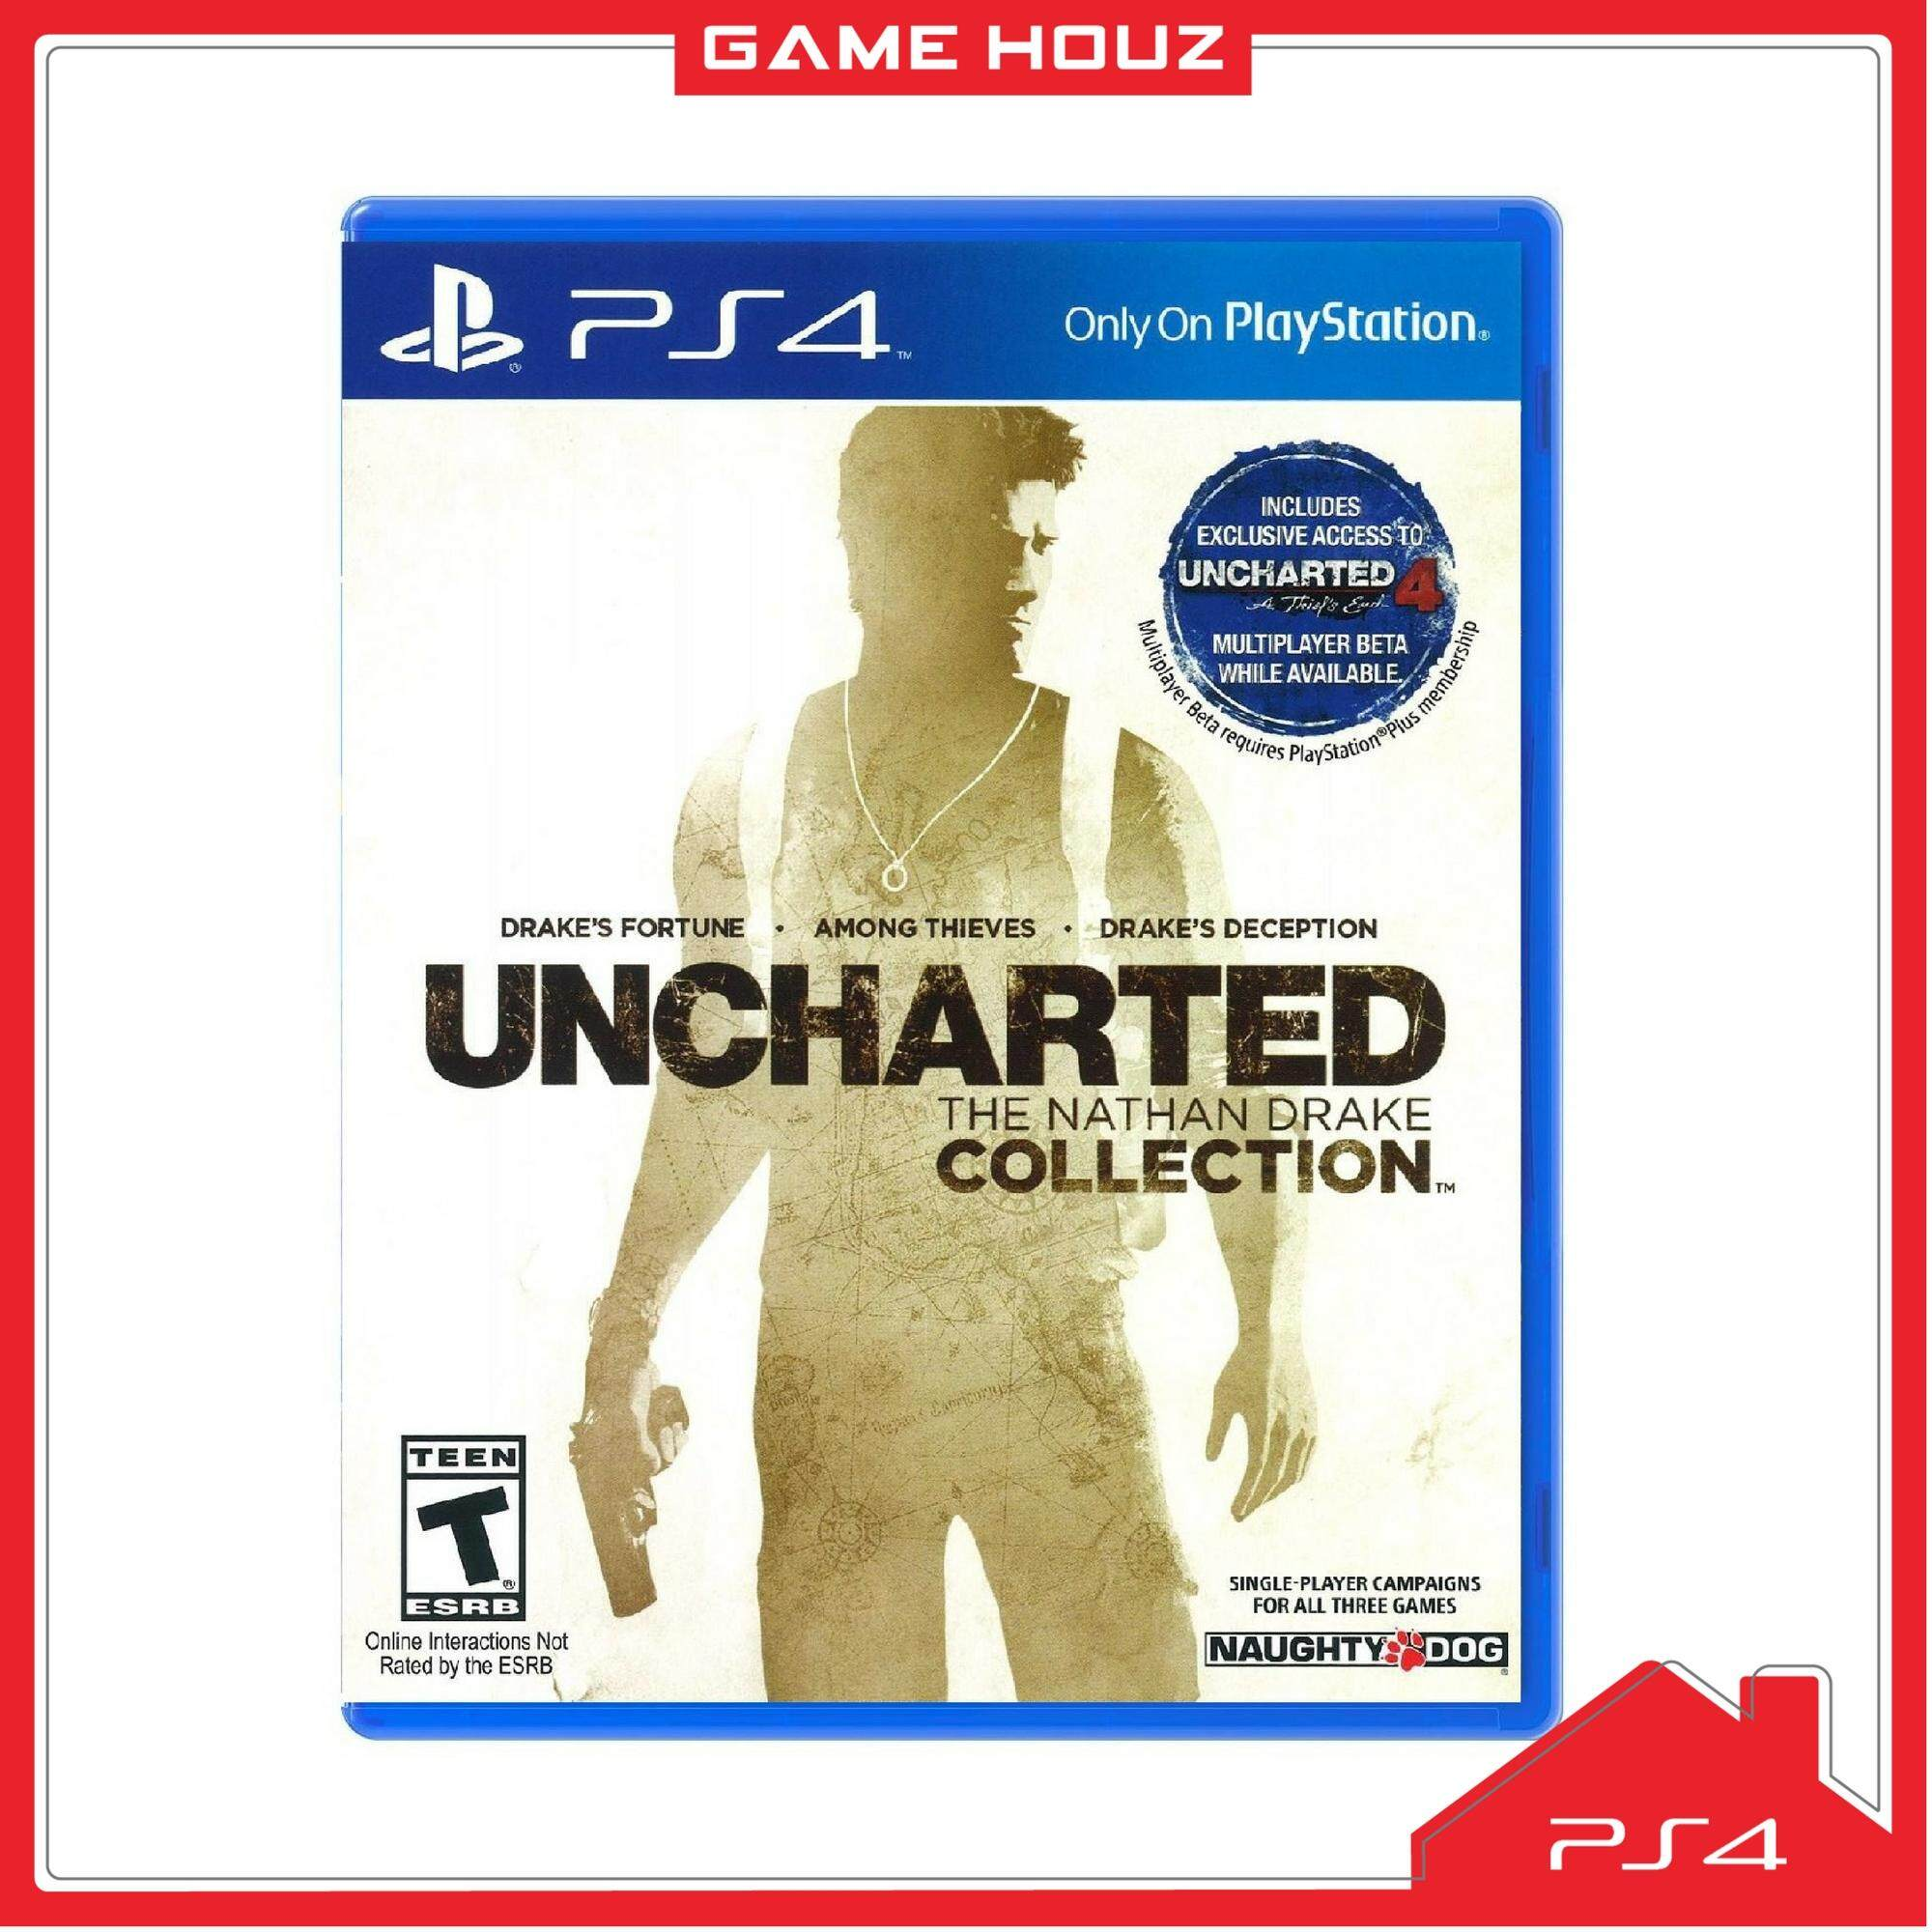 (PS4) Uncharted: The Nathan Drake Collection (R3/ENG/CHN) - NEW